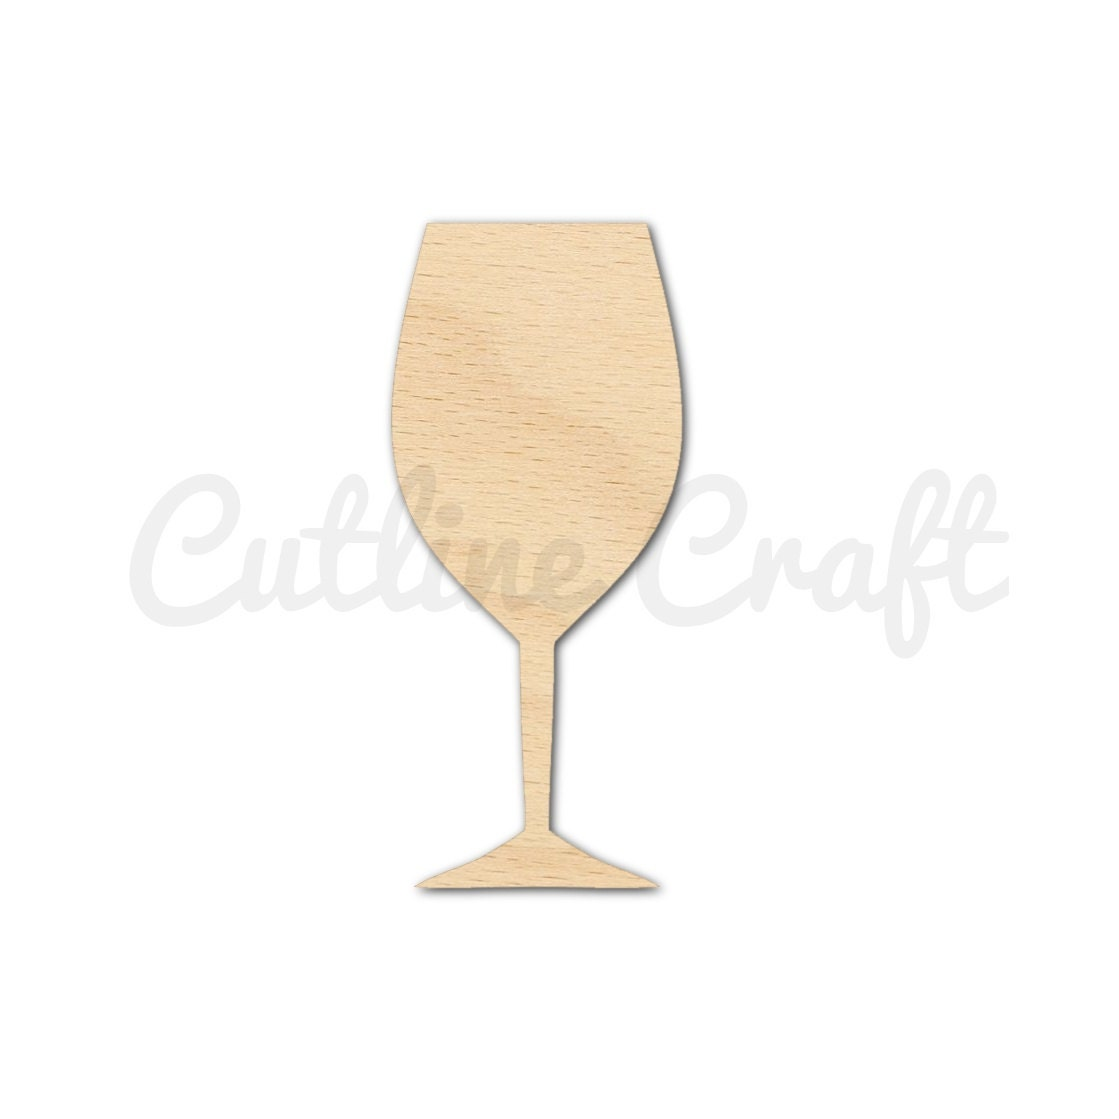 wine glass 1388 cutout shapes crafts gift tags ornaments